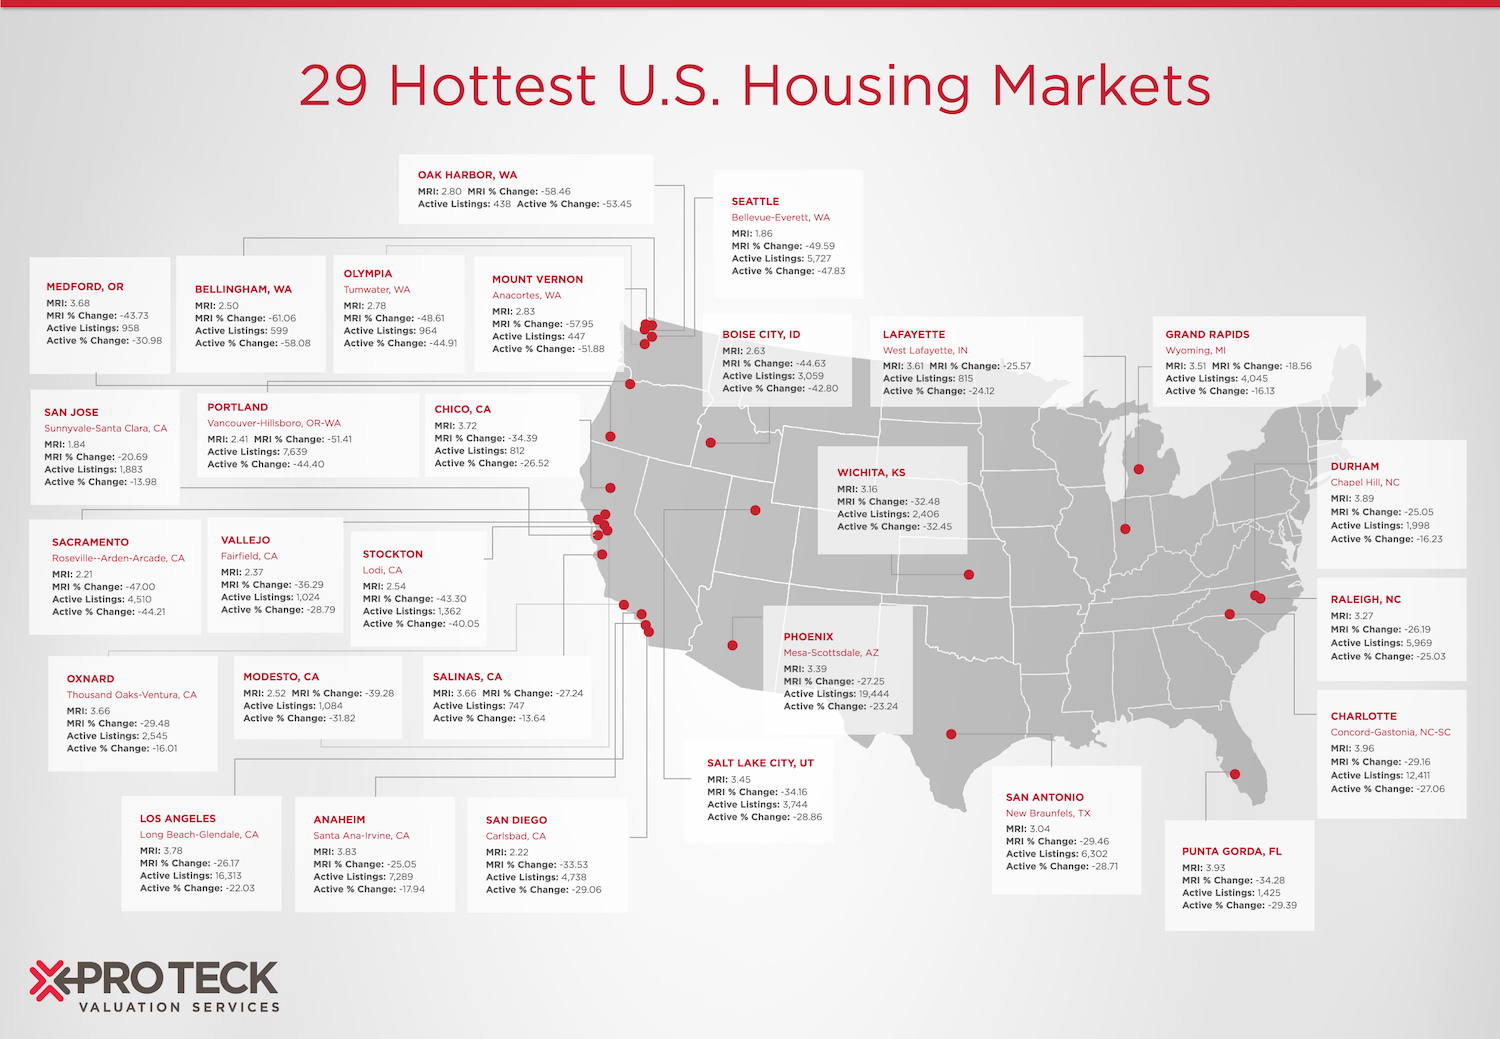 Raleigh among the Hottest Real Estate Markets in the US